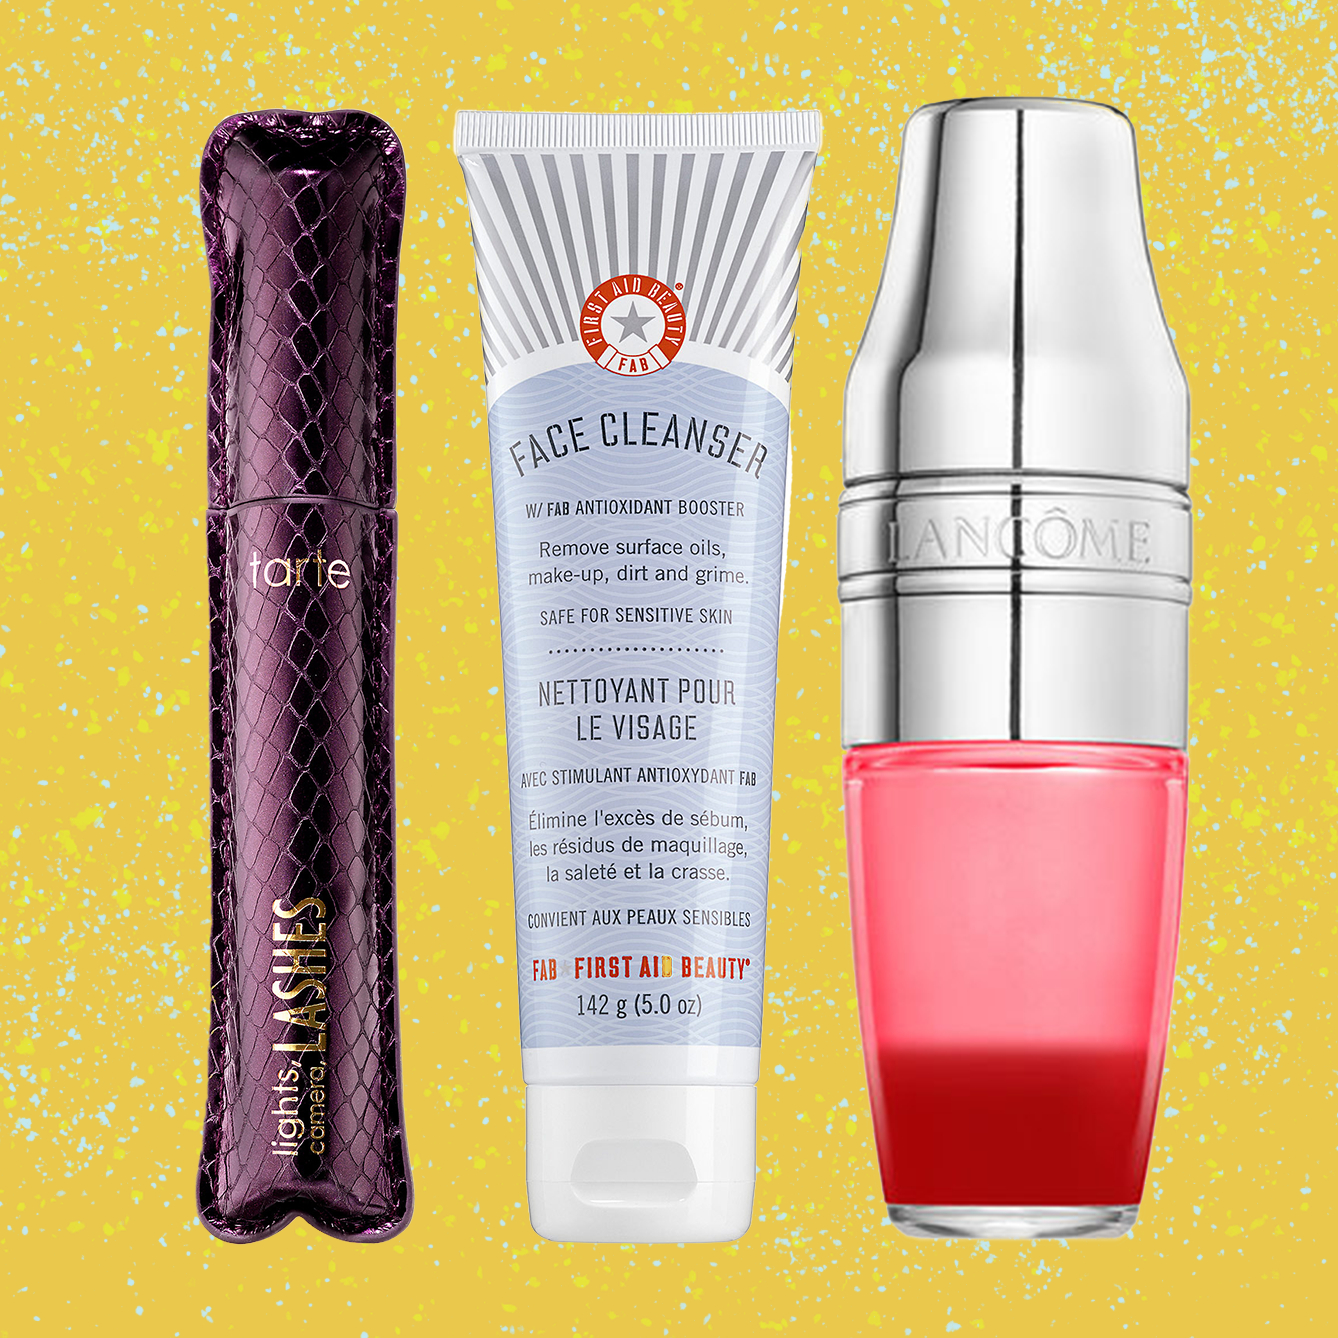 Here's What Influensters Say About This Week's Sephora Sale Products